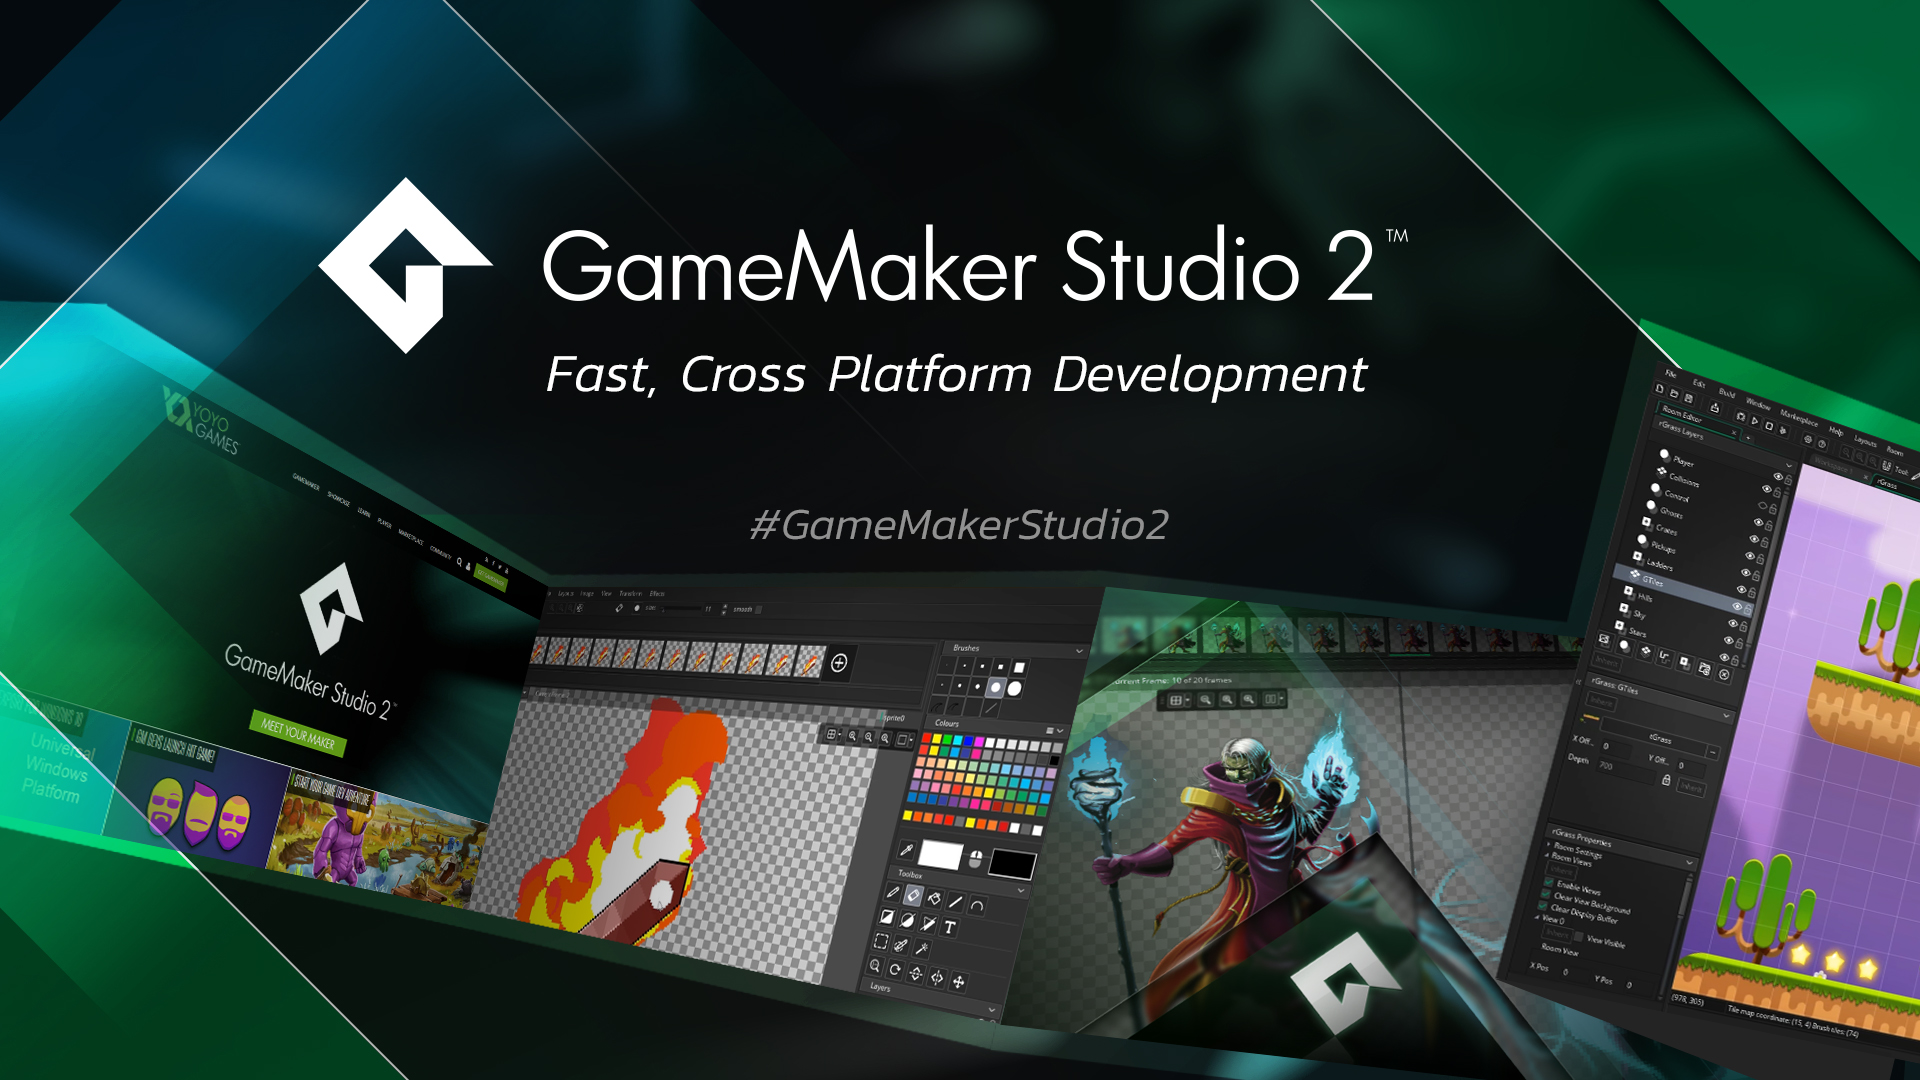 GameMaker Studio 2.0.7 And Console Exports - Out Now!